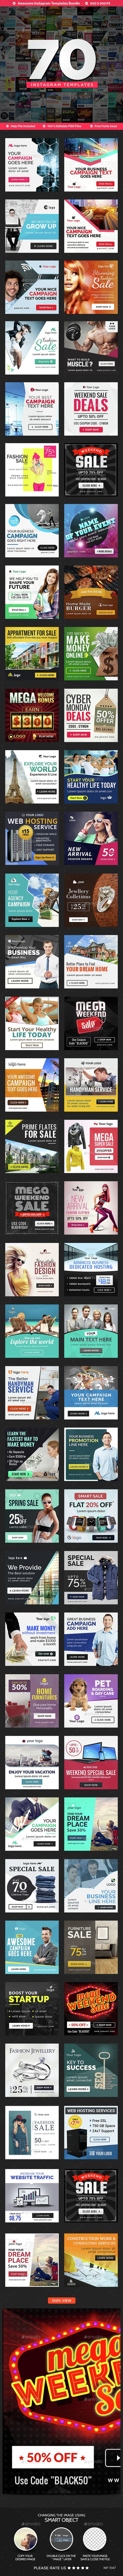 Instagram Banners Design Template 70 Banners - Banners & Ads Web Template PSD. Download here: https://graphicriver.net/item/instagram-banners-70-banners/15278059?s_rank=1&ref=yinkira